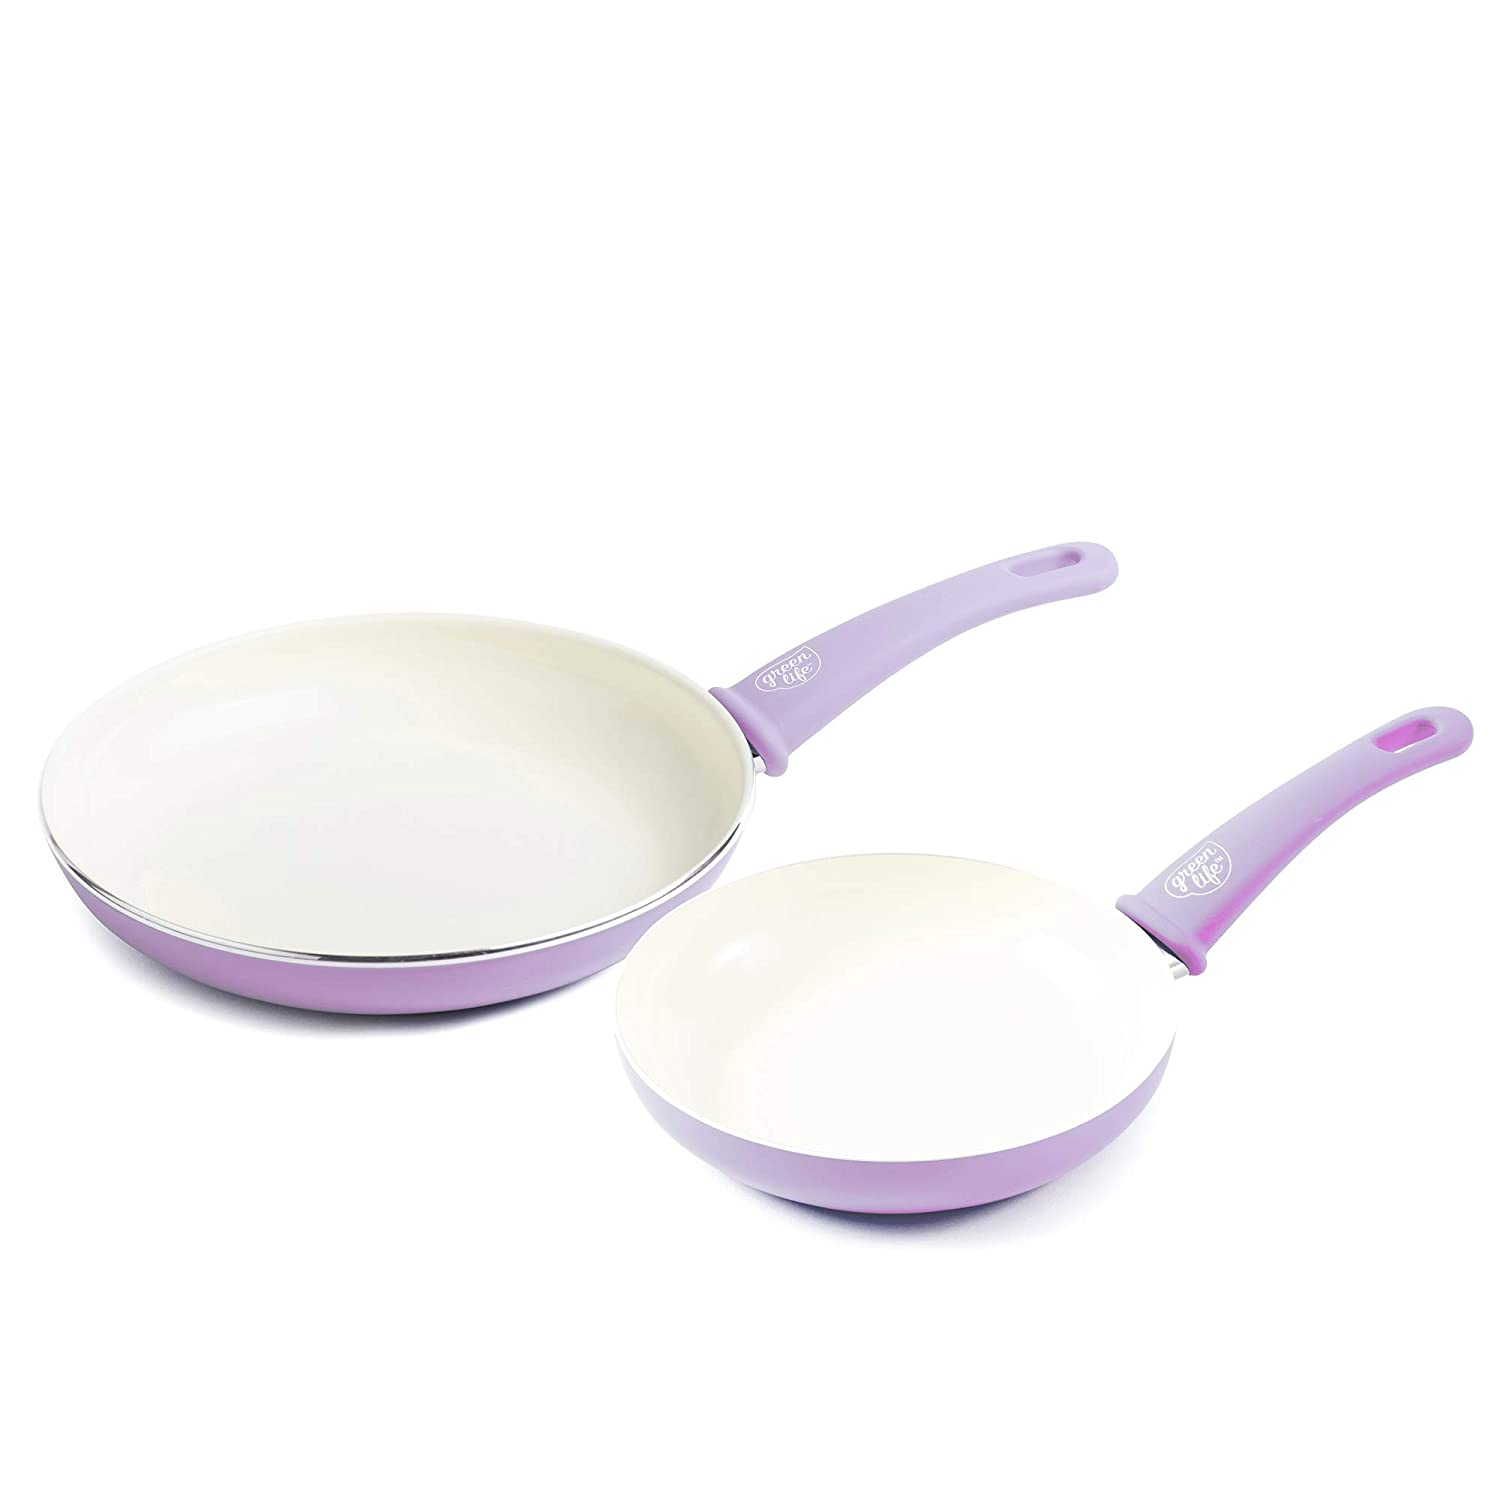 """GreenLife CC001910-001 Soft Grip Ceramic Non-Stick 7"""" and 10"""" Open Frypan Set, Lavender"""